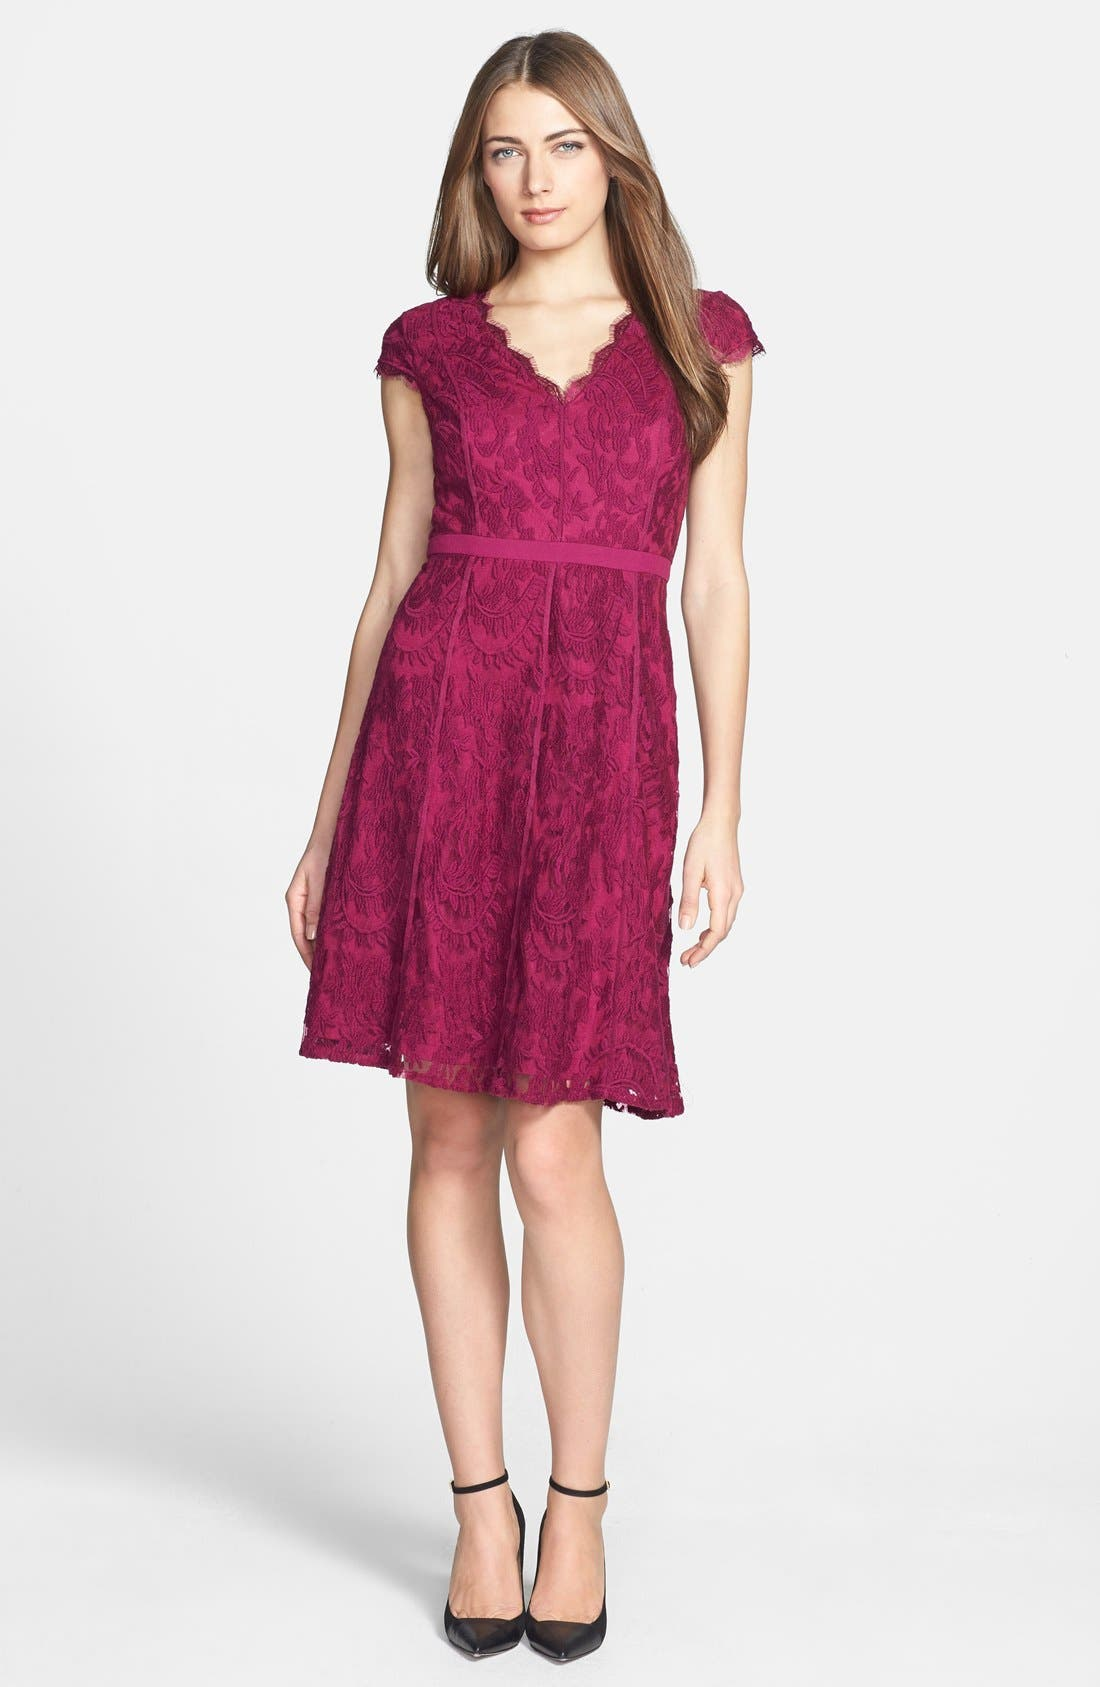 Alternate Image 1 Selected - Adrianna Papell Lace Fit & Flare Dress